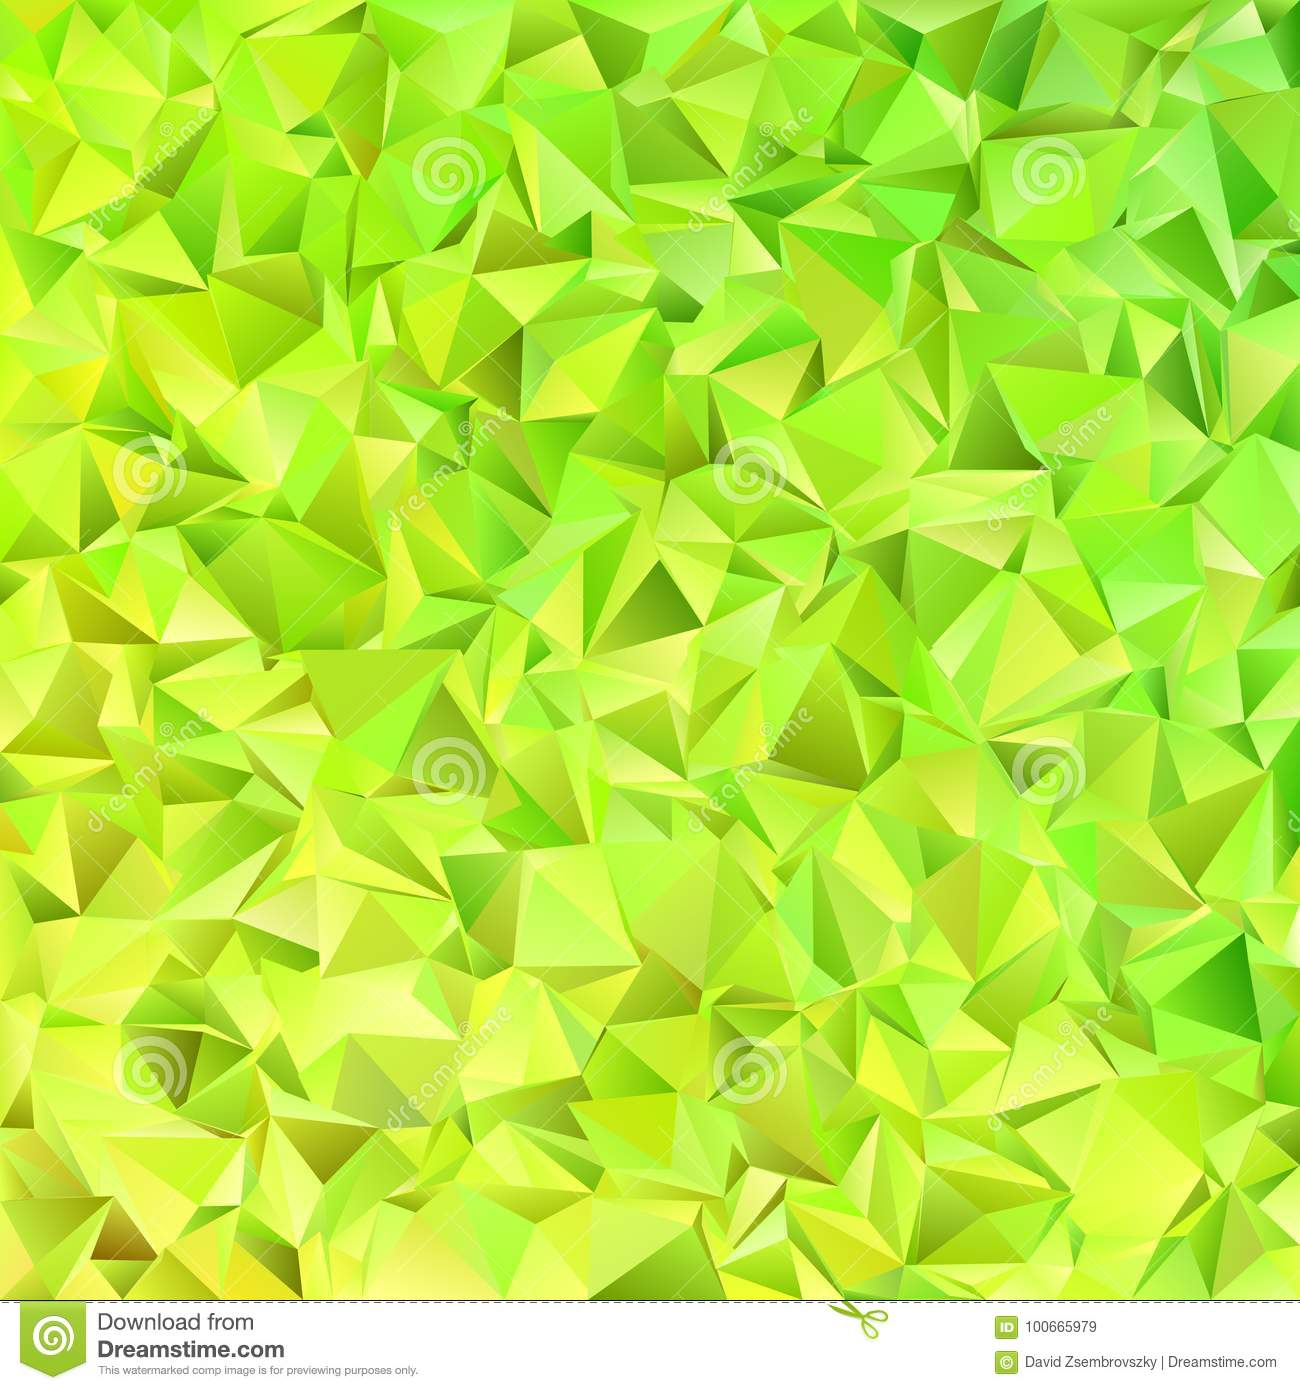 download lime green abstract chaotic triangle pattern background geometrical vector graphic design from triangle tiles